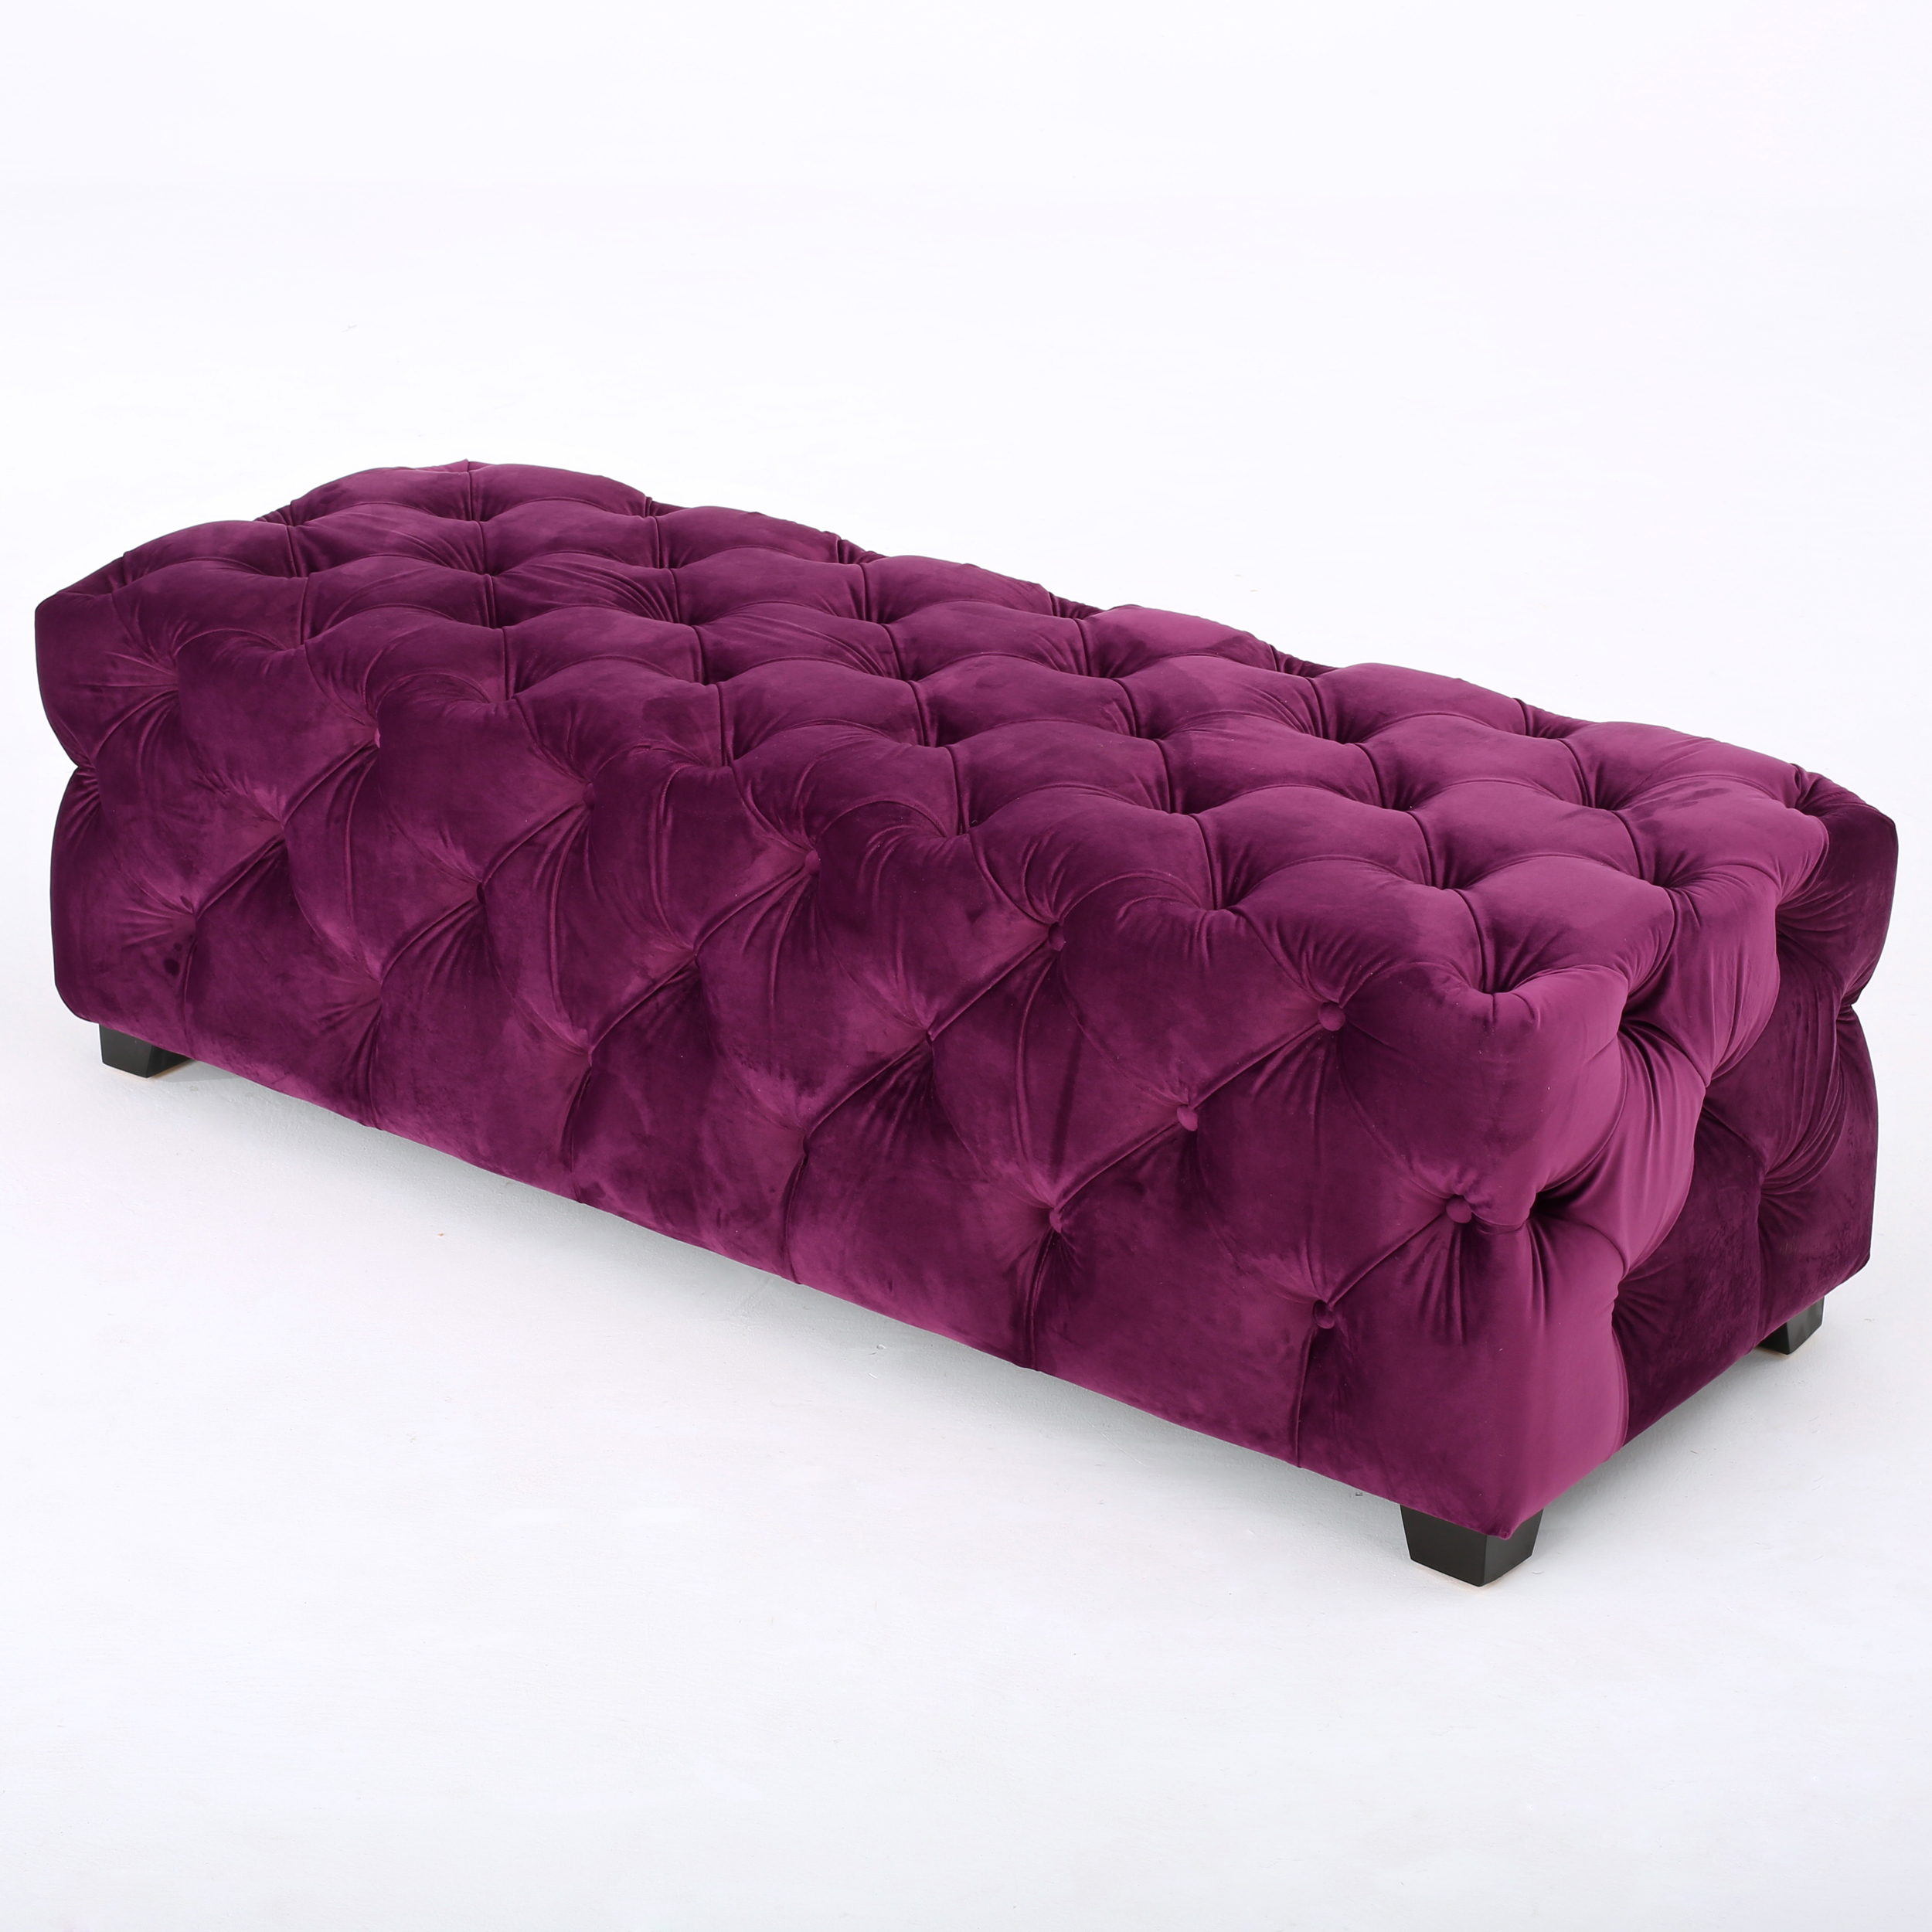 Provence Tufted Velvet Fabric Rectangle Ottoman Bench, Fuchsia